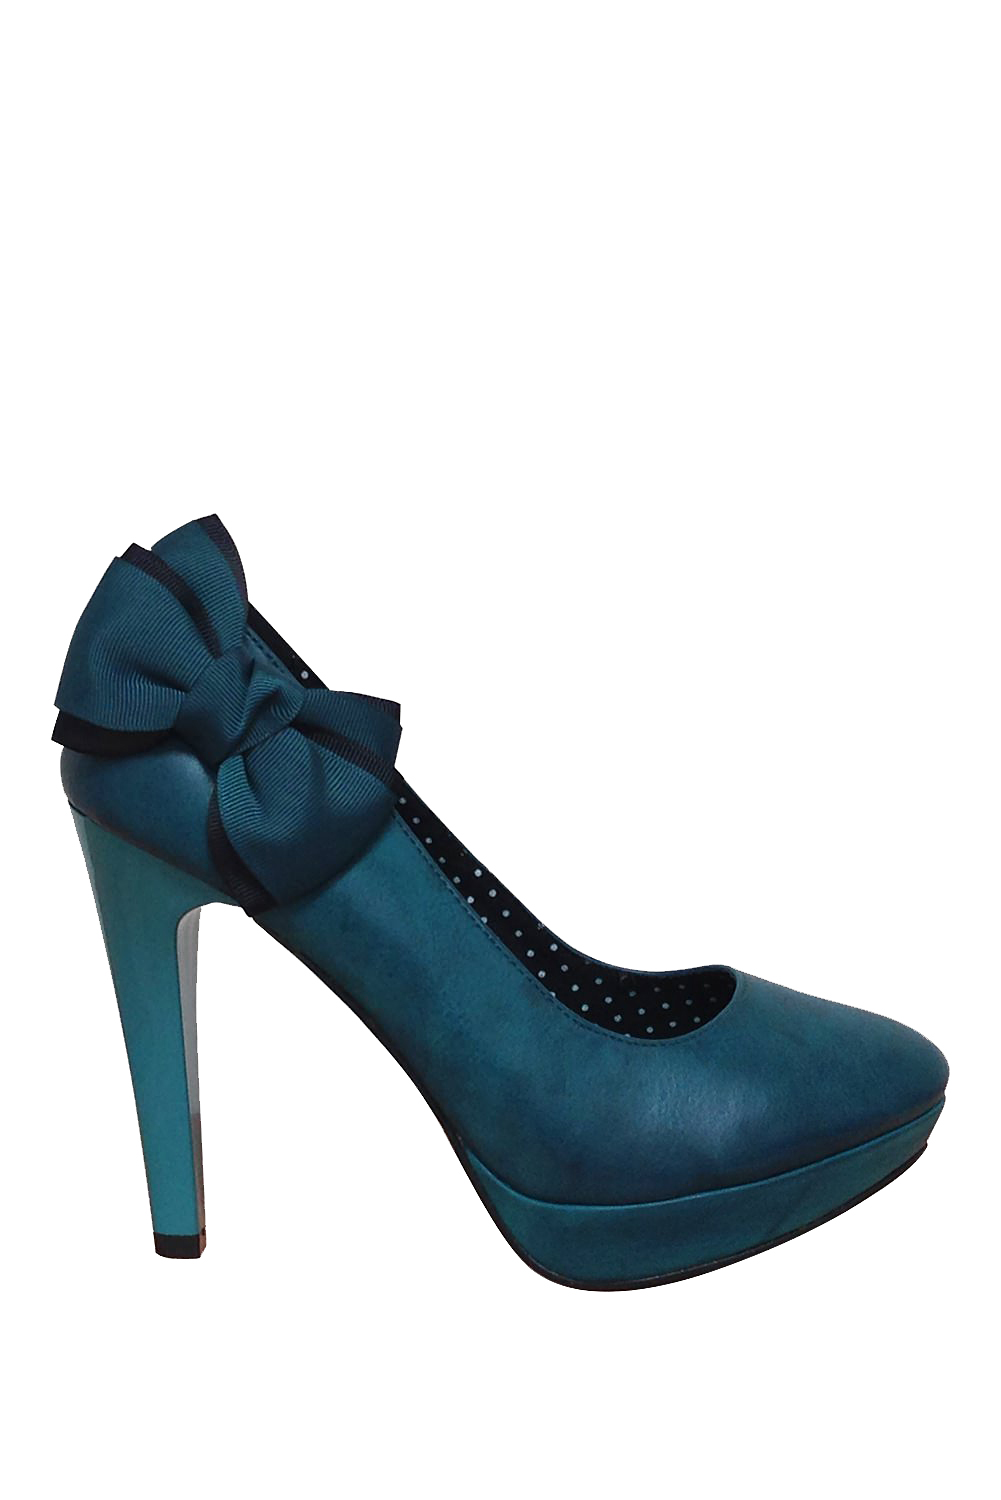 Dancing Days Diane 1940s Blue Shoes